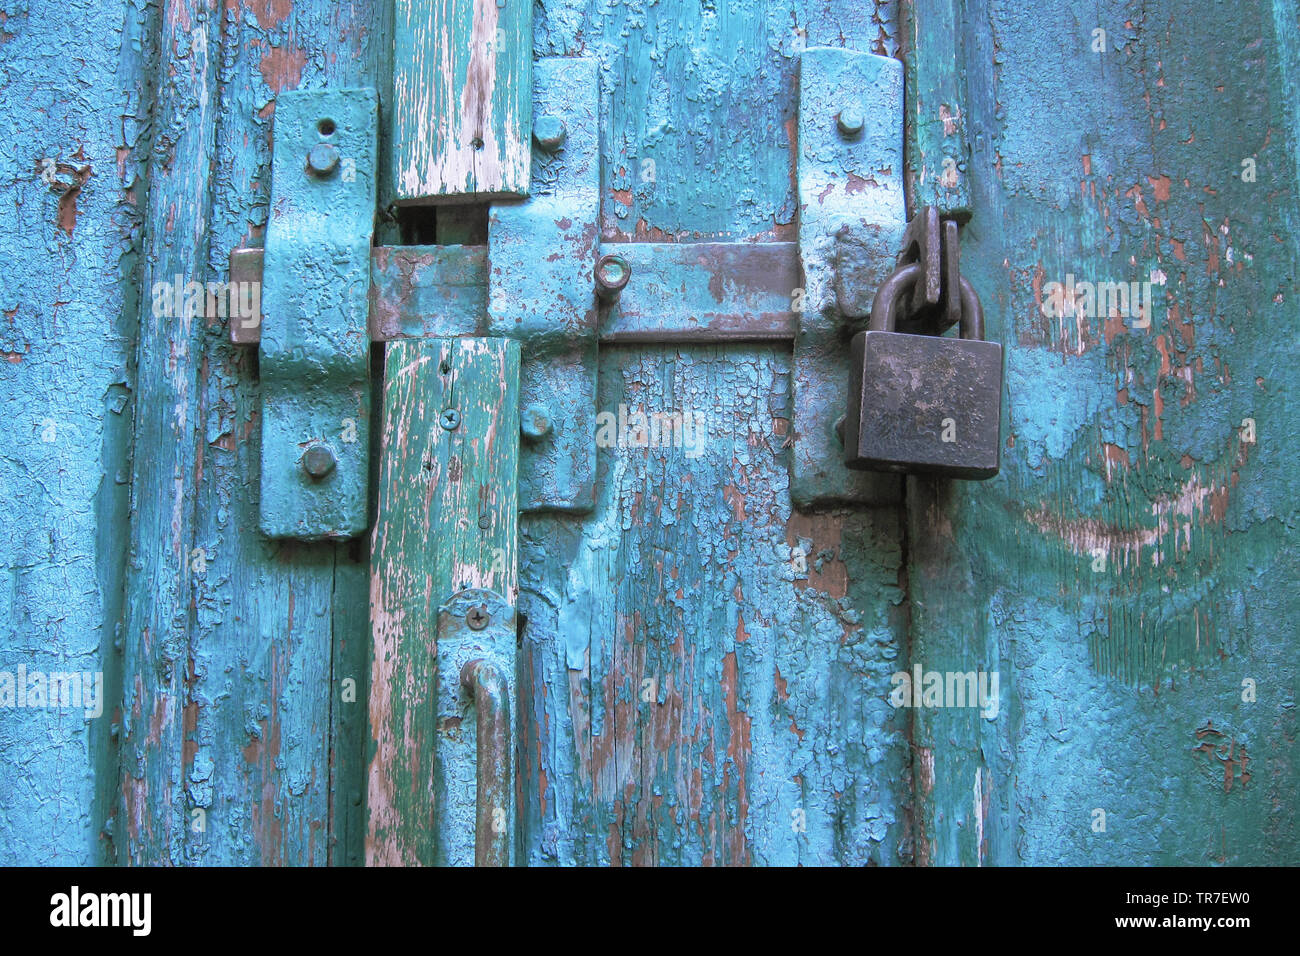 Vintage latch and closed padlock on weathered scratched wooden door. Concept of security and privacy protection. Textured grunge background Stock Photo